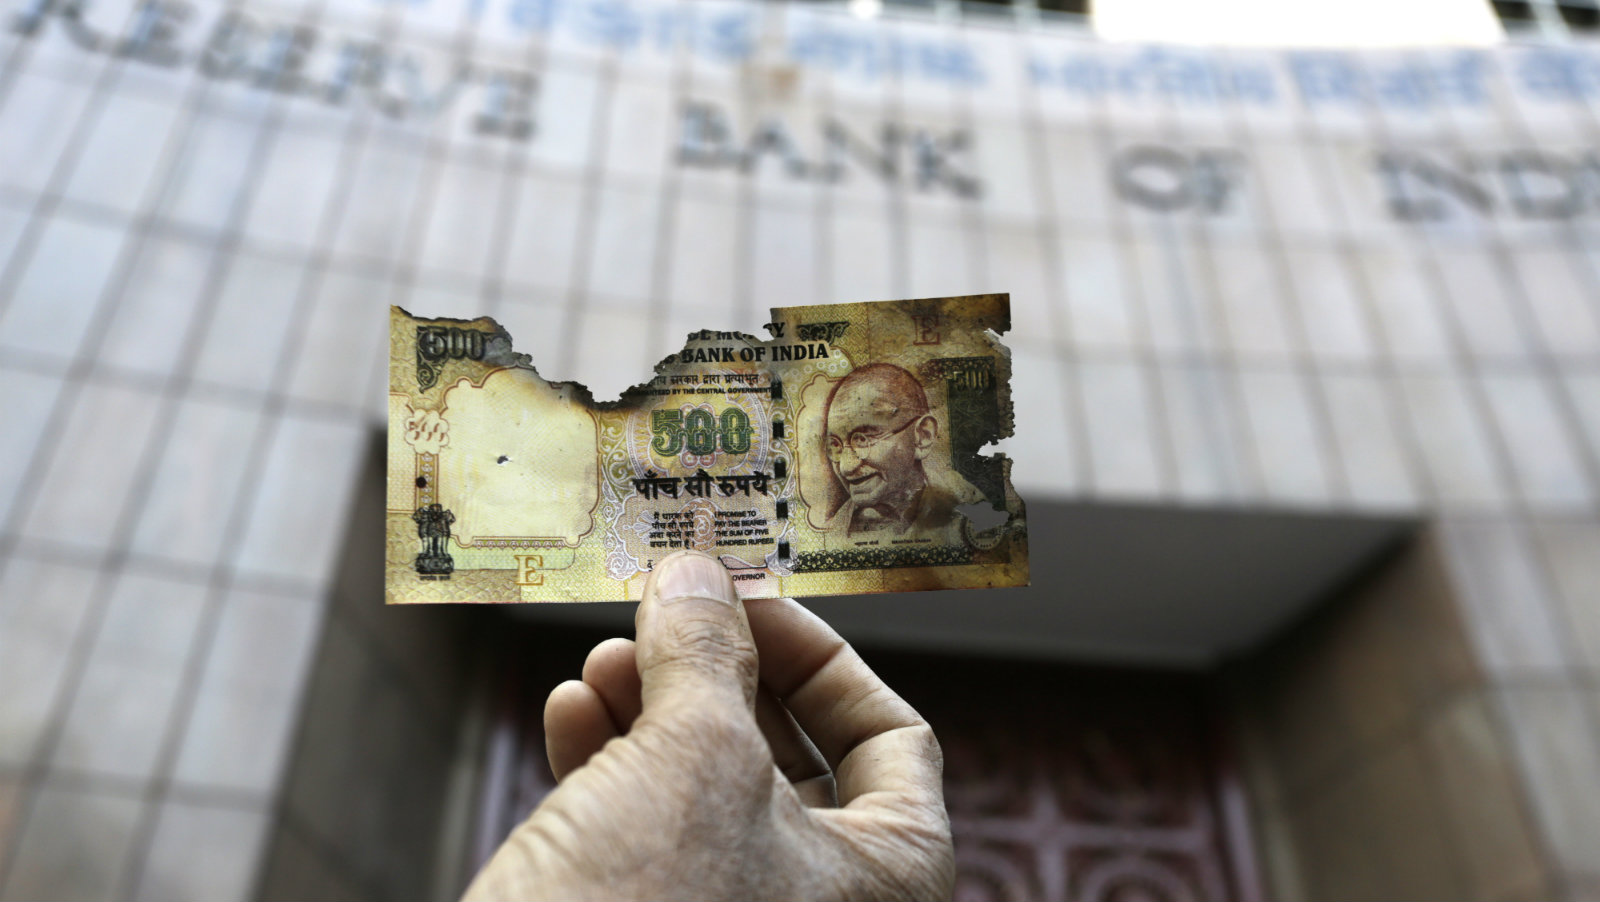 A man holds a charred facsimile of the discontinued Indian currency 500 note after a protest by a traders association demanding adequate arrangement to exchange discontinued currency notes outside Reserve Bank of India in Kolkata, India, Wednesday, Nov. 16, 2016. India announced a week ago that it was withdrawing 500 and 1,000 rupee notes as legal tender to fight corruption and tax evasion. However, people are allowed a onetime swap of 4,000 rupees ($59) at any bank in exchange for smaller notes to meet immediate needs.